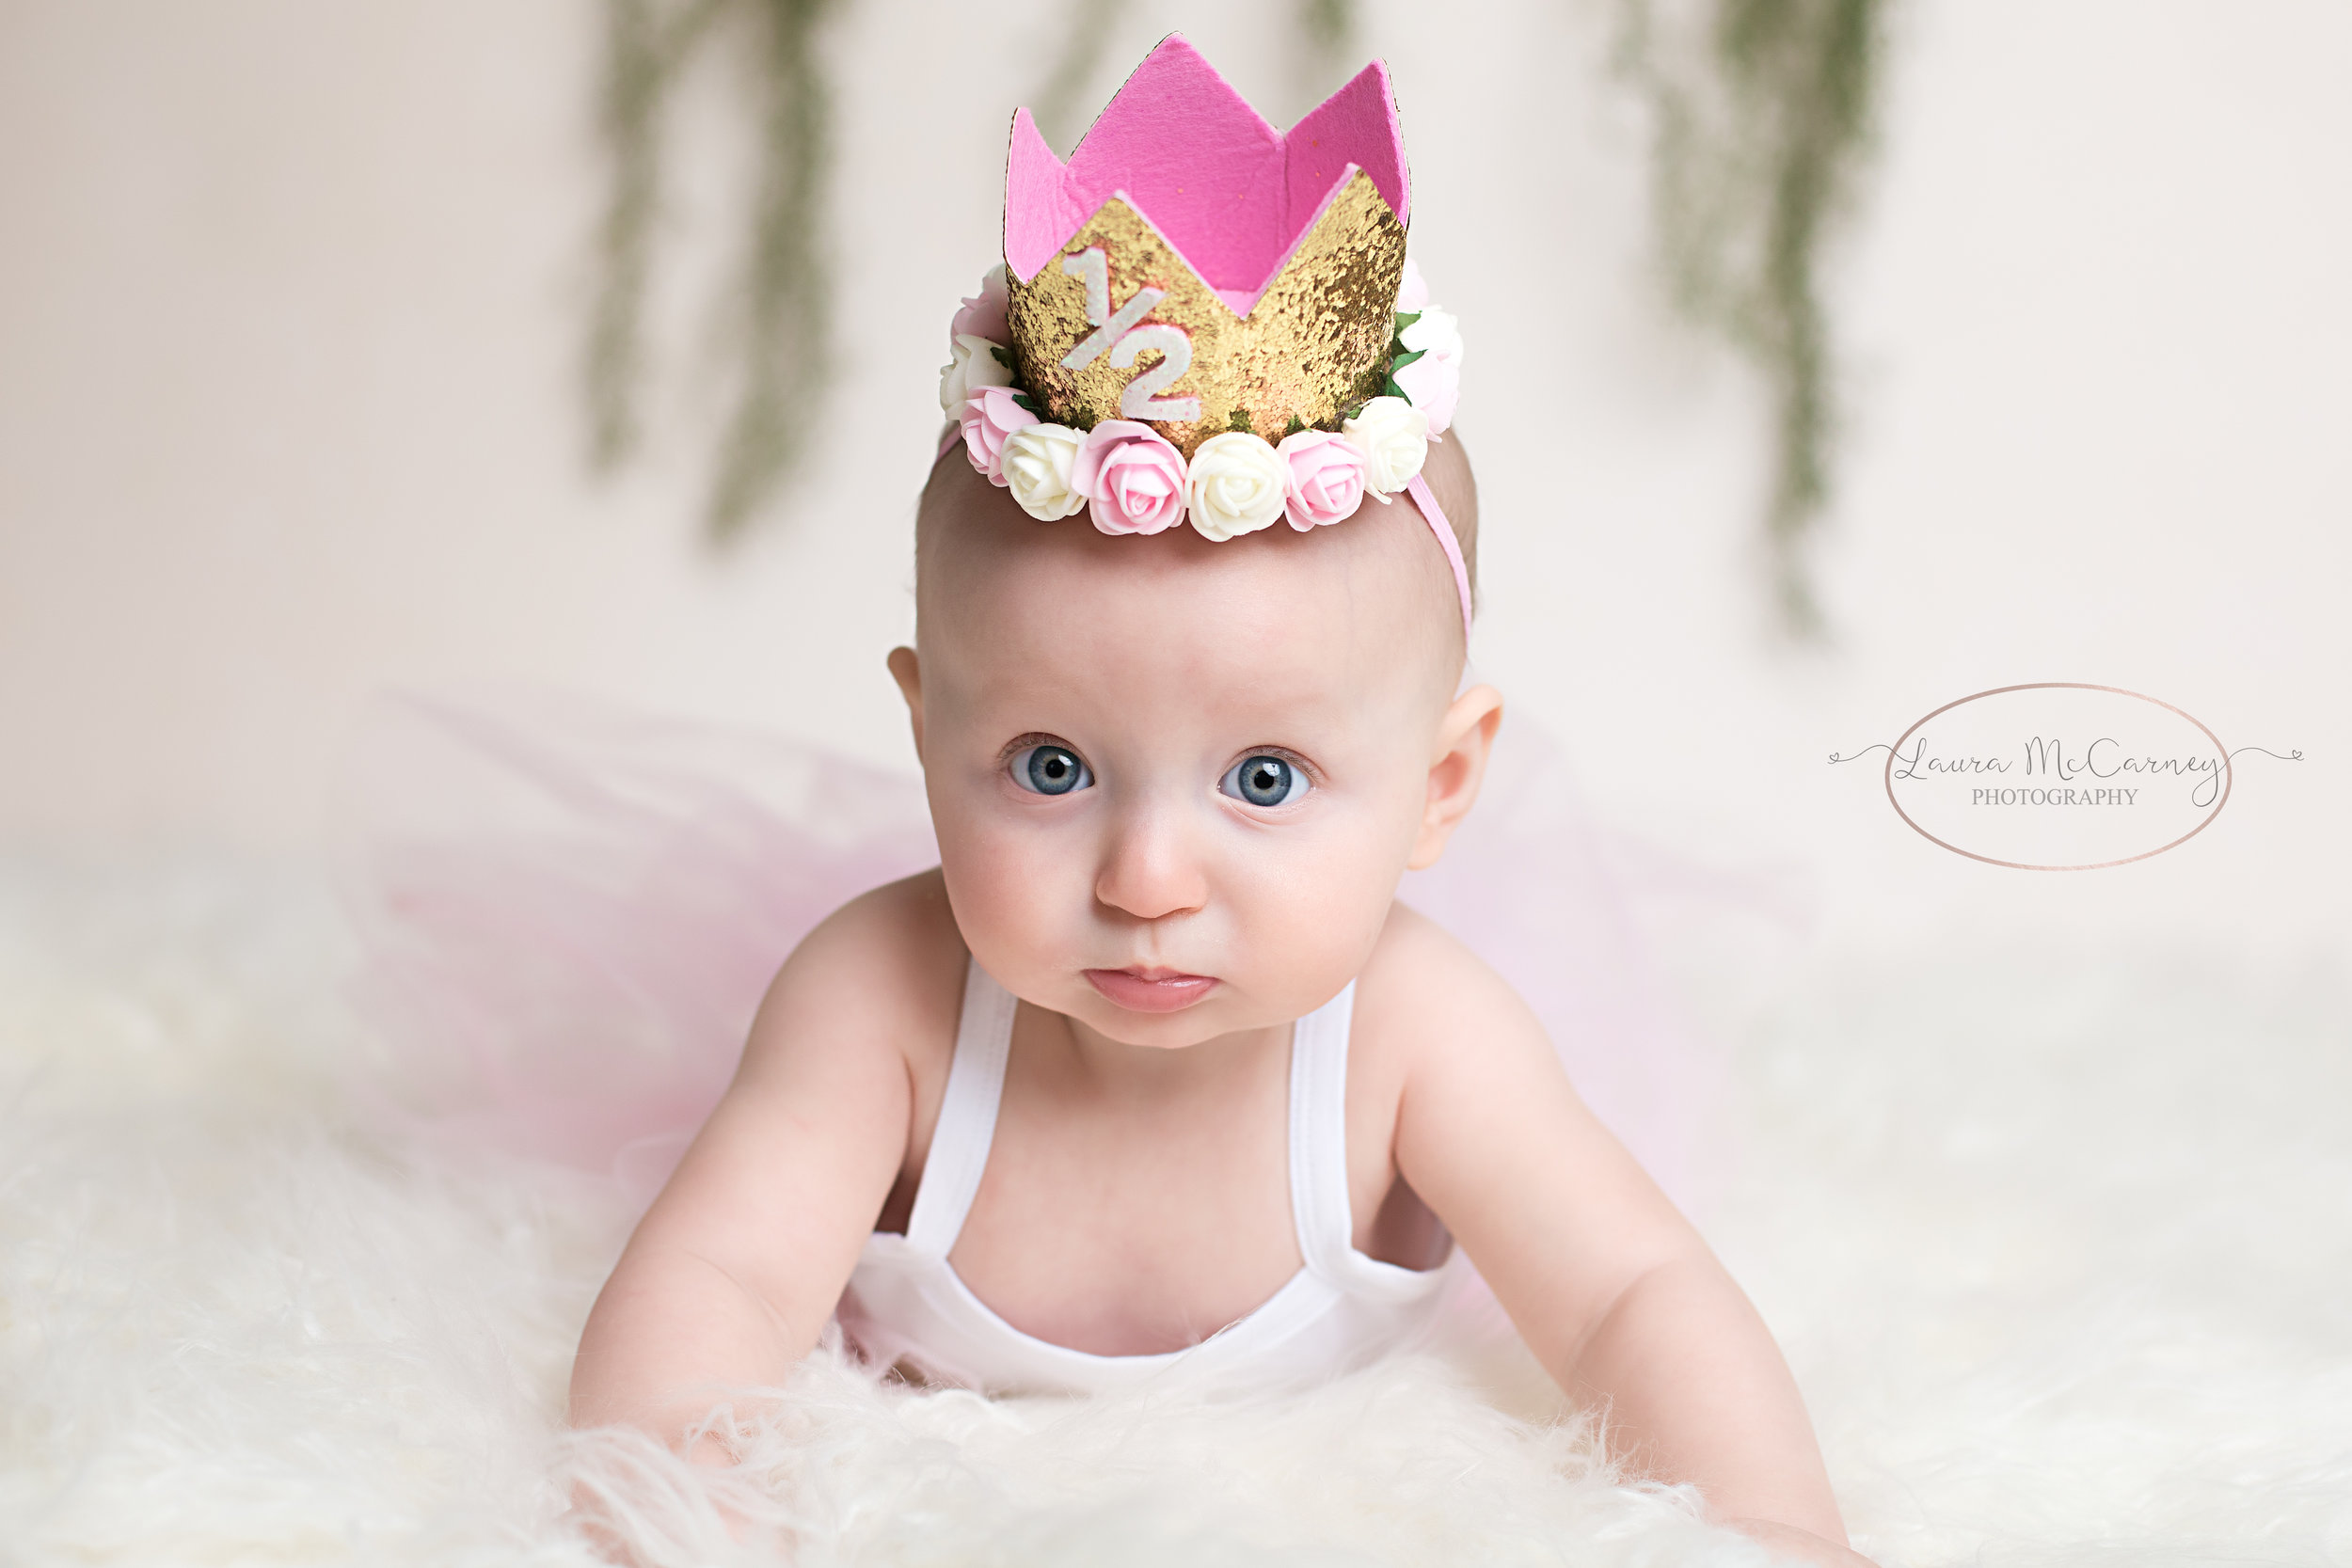 6 month milestone session, montgomery photographer, newborn photographer, childrens photographer, bucks county photographer, newborn photo session, milestone session